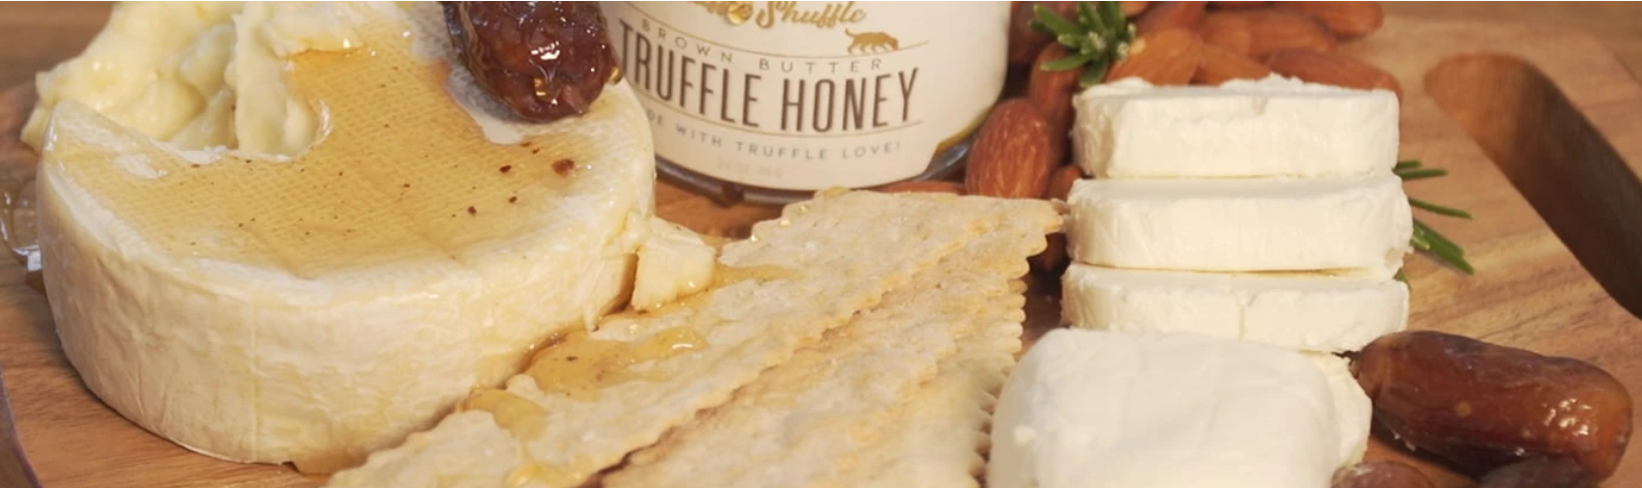 Image of Cheese Board with California's Finest Products